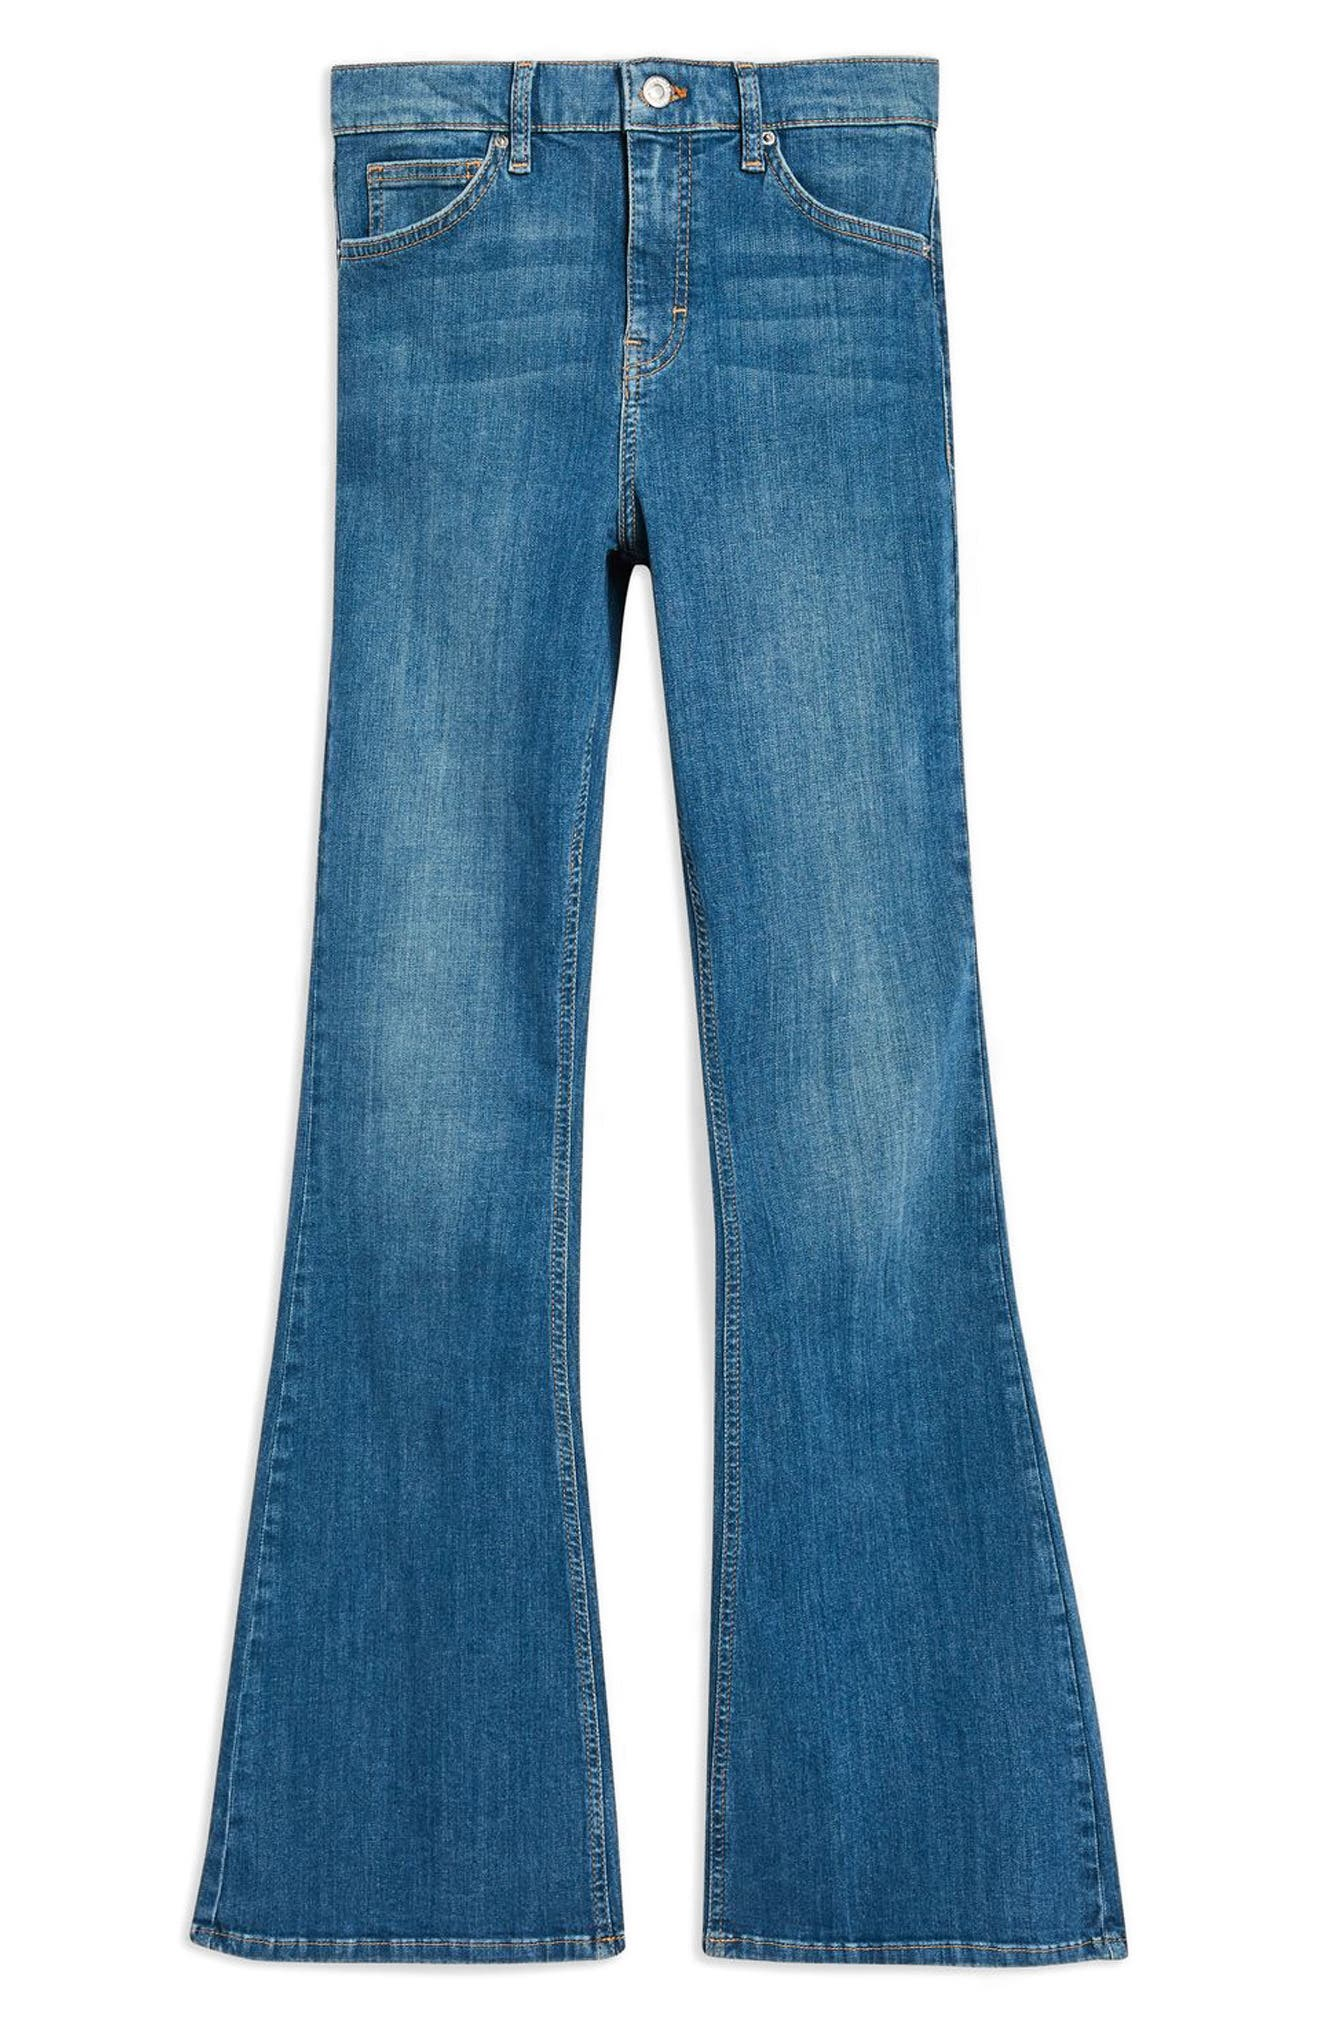 TOPSHOP,                             Jamie Flare Jeans,                             Alternate thumbnail 3, color,                             310